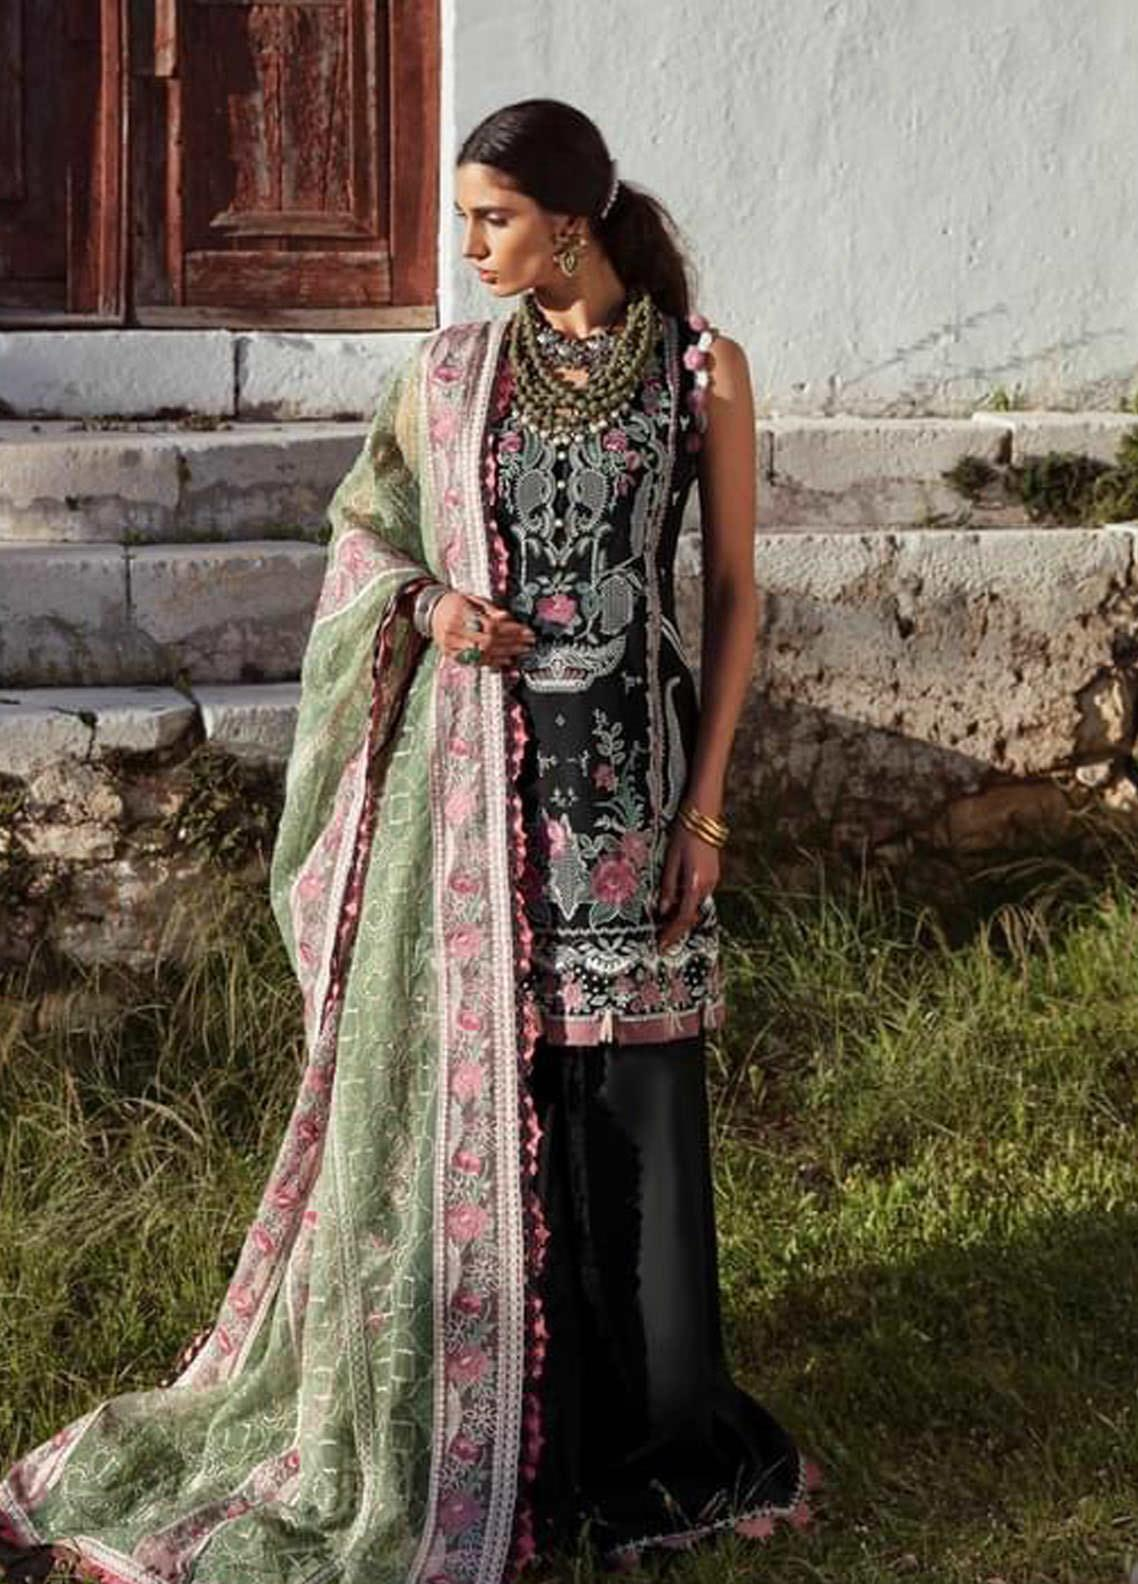 Selene By Republic WomensWear Embroidered Lawn Suits Unstitched 3 Piece RW21S Aydin A - Luxury Collection